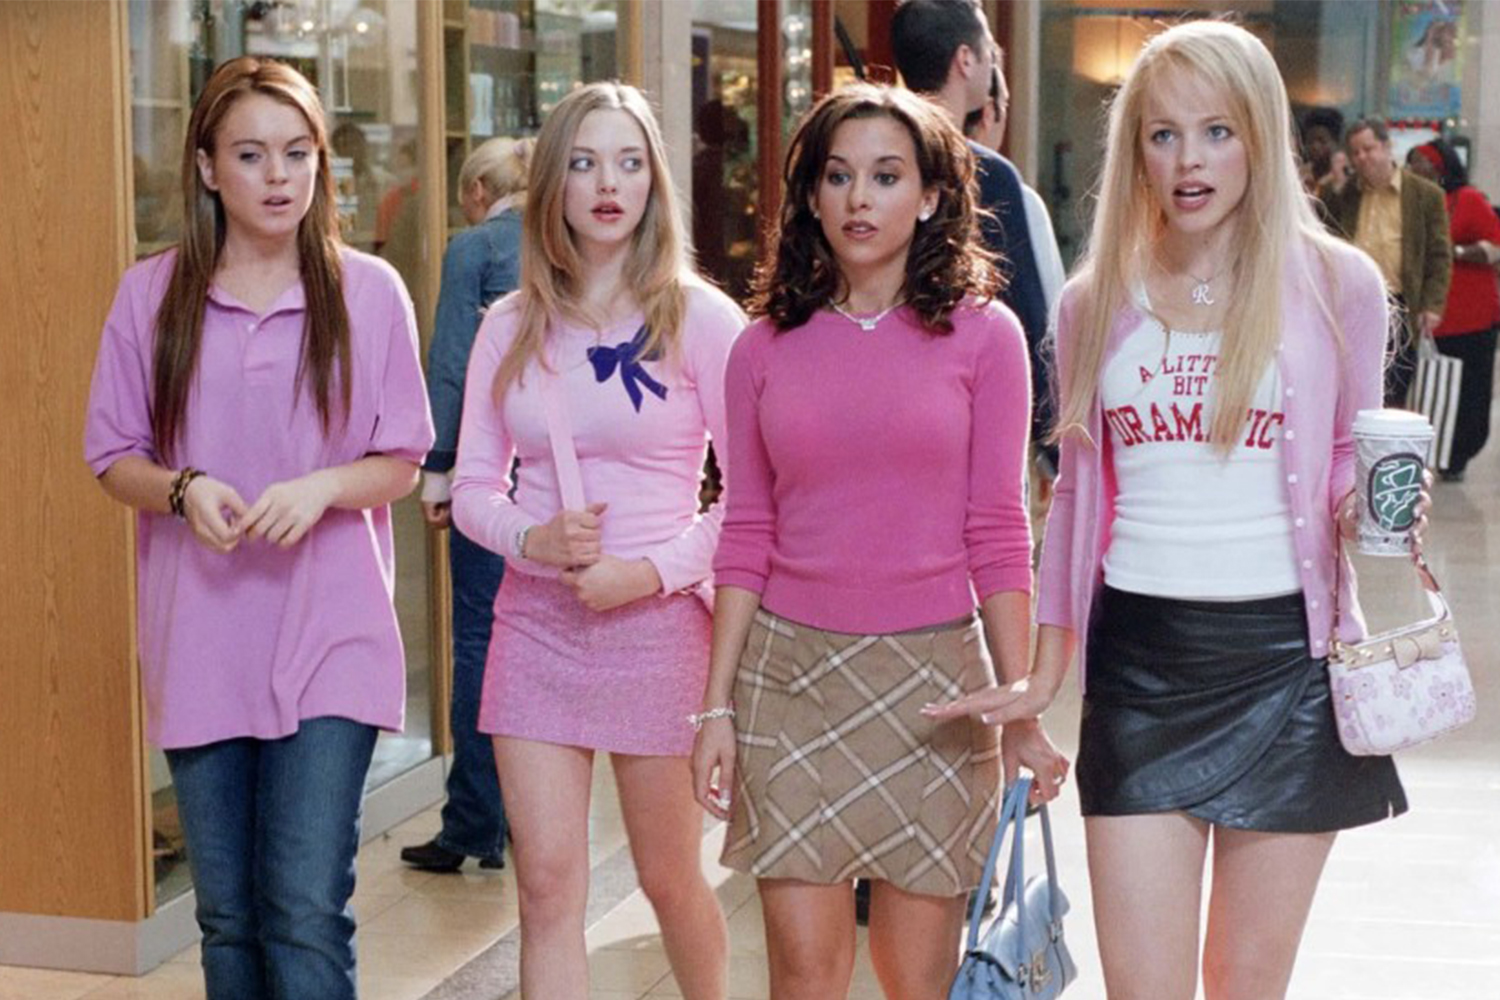 Mean girls moments